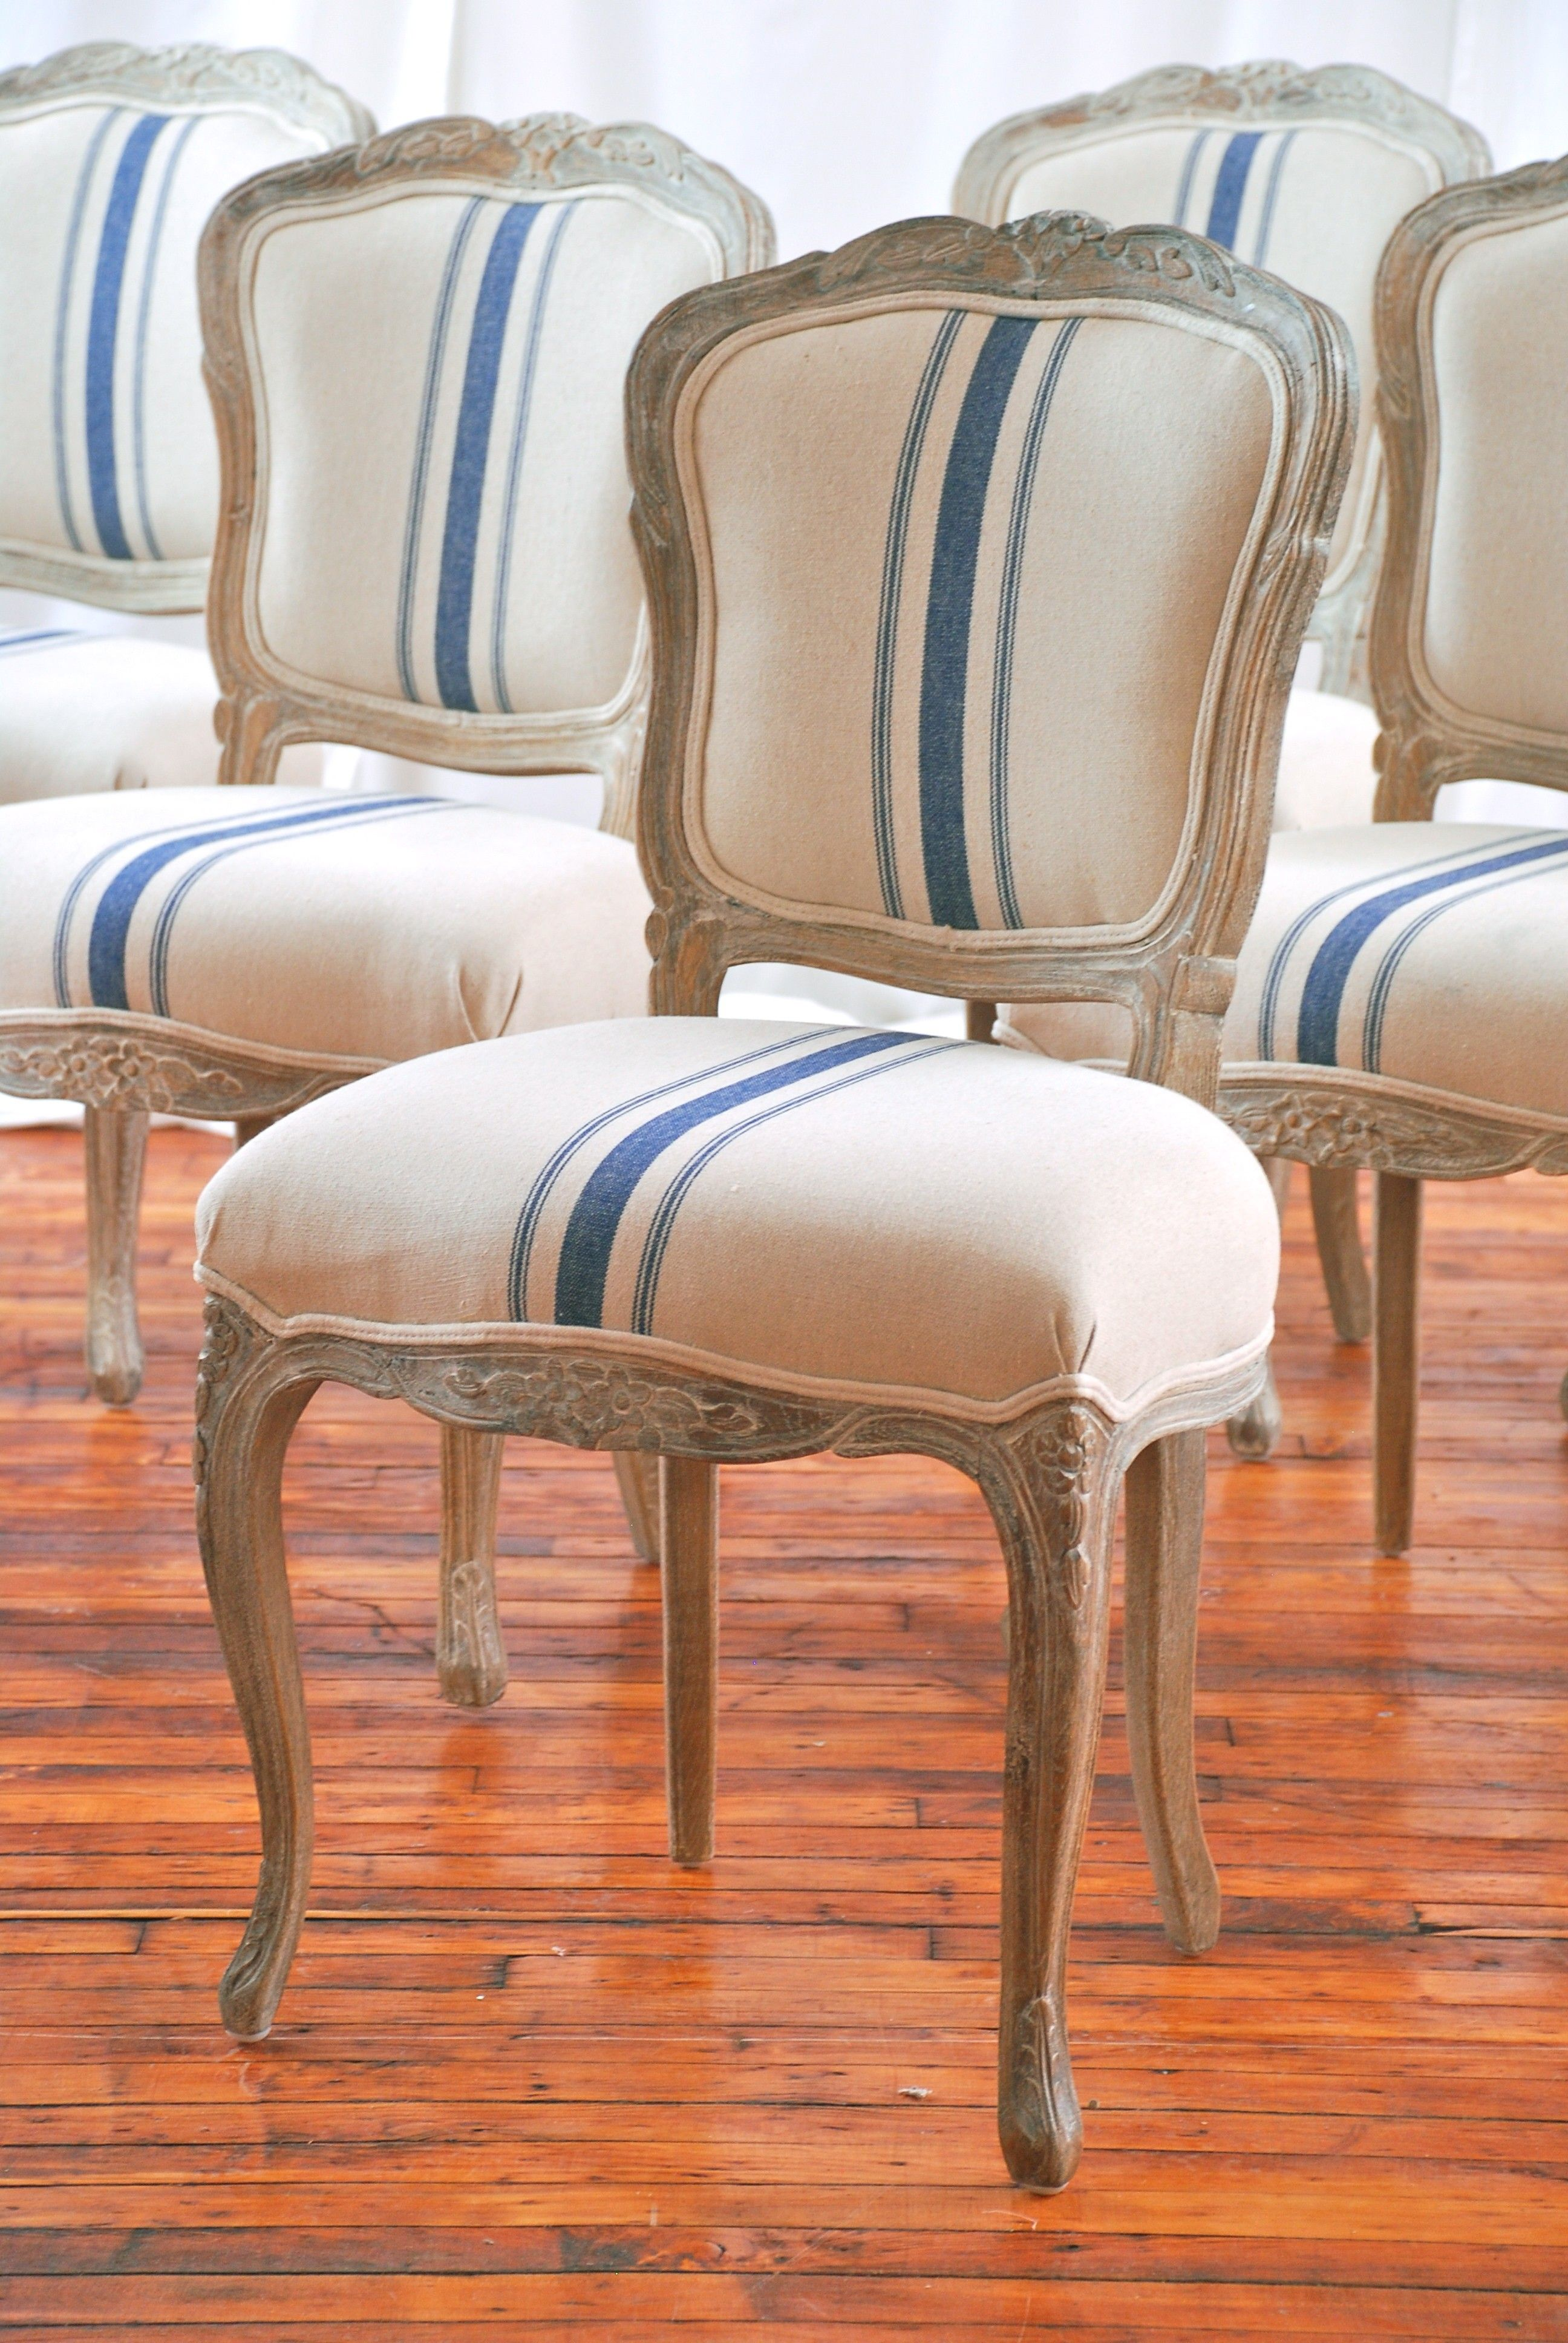 Limed Oak French Chairs 435 Chicago Http Furnishly Com Catalo